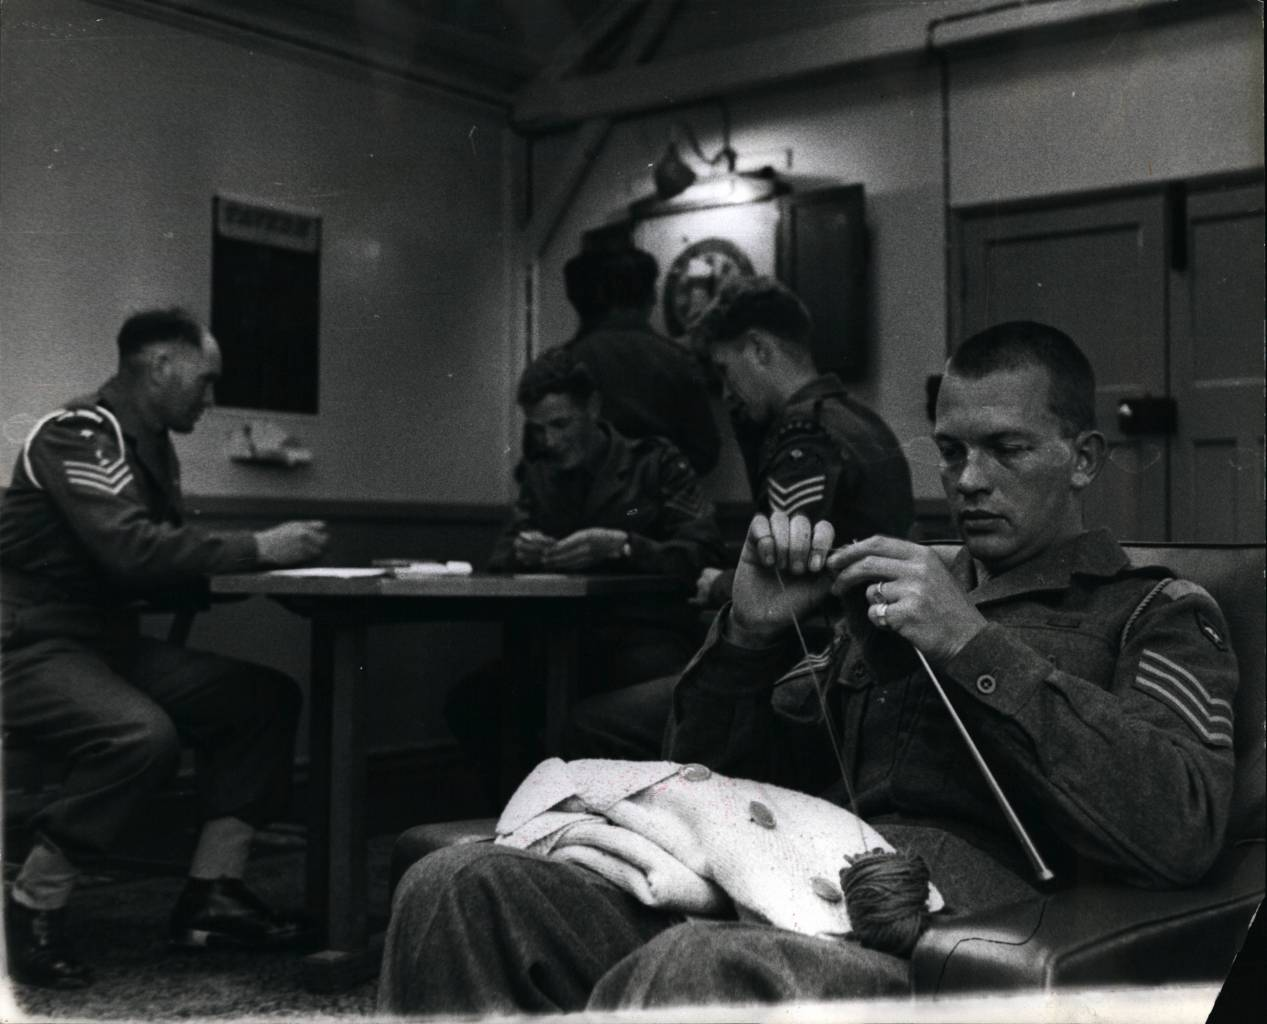 Off duty British soldier knitting